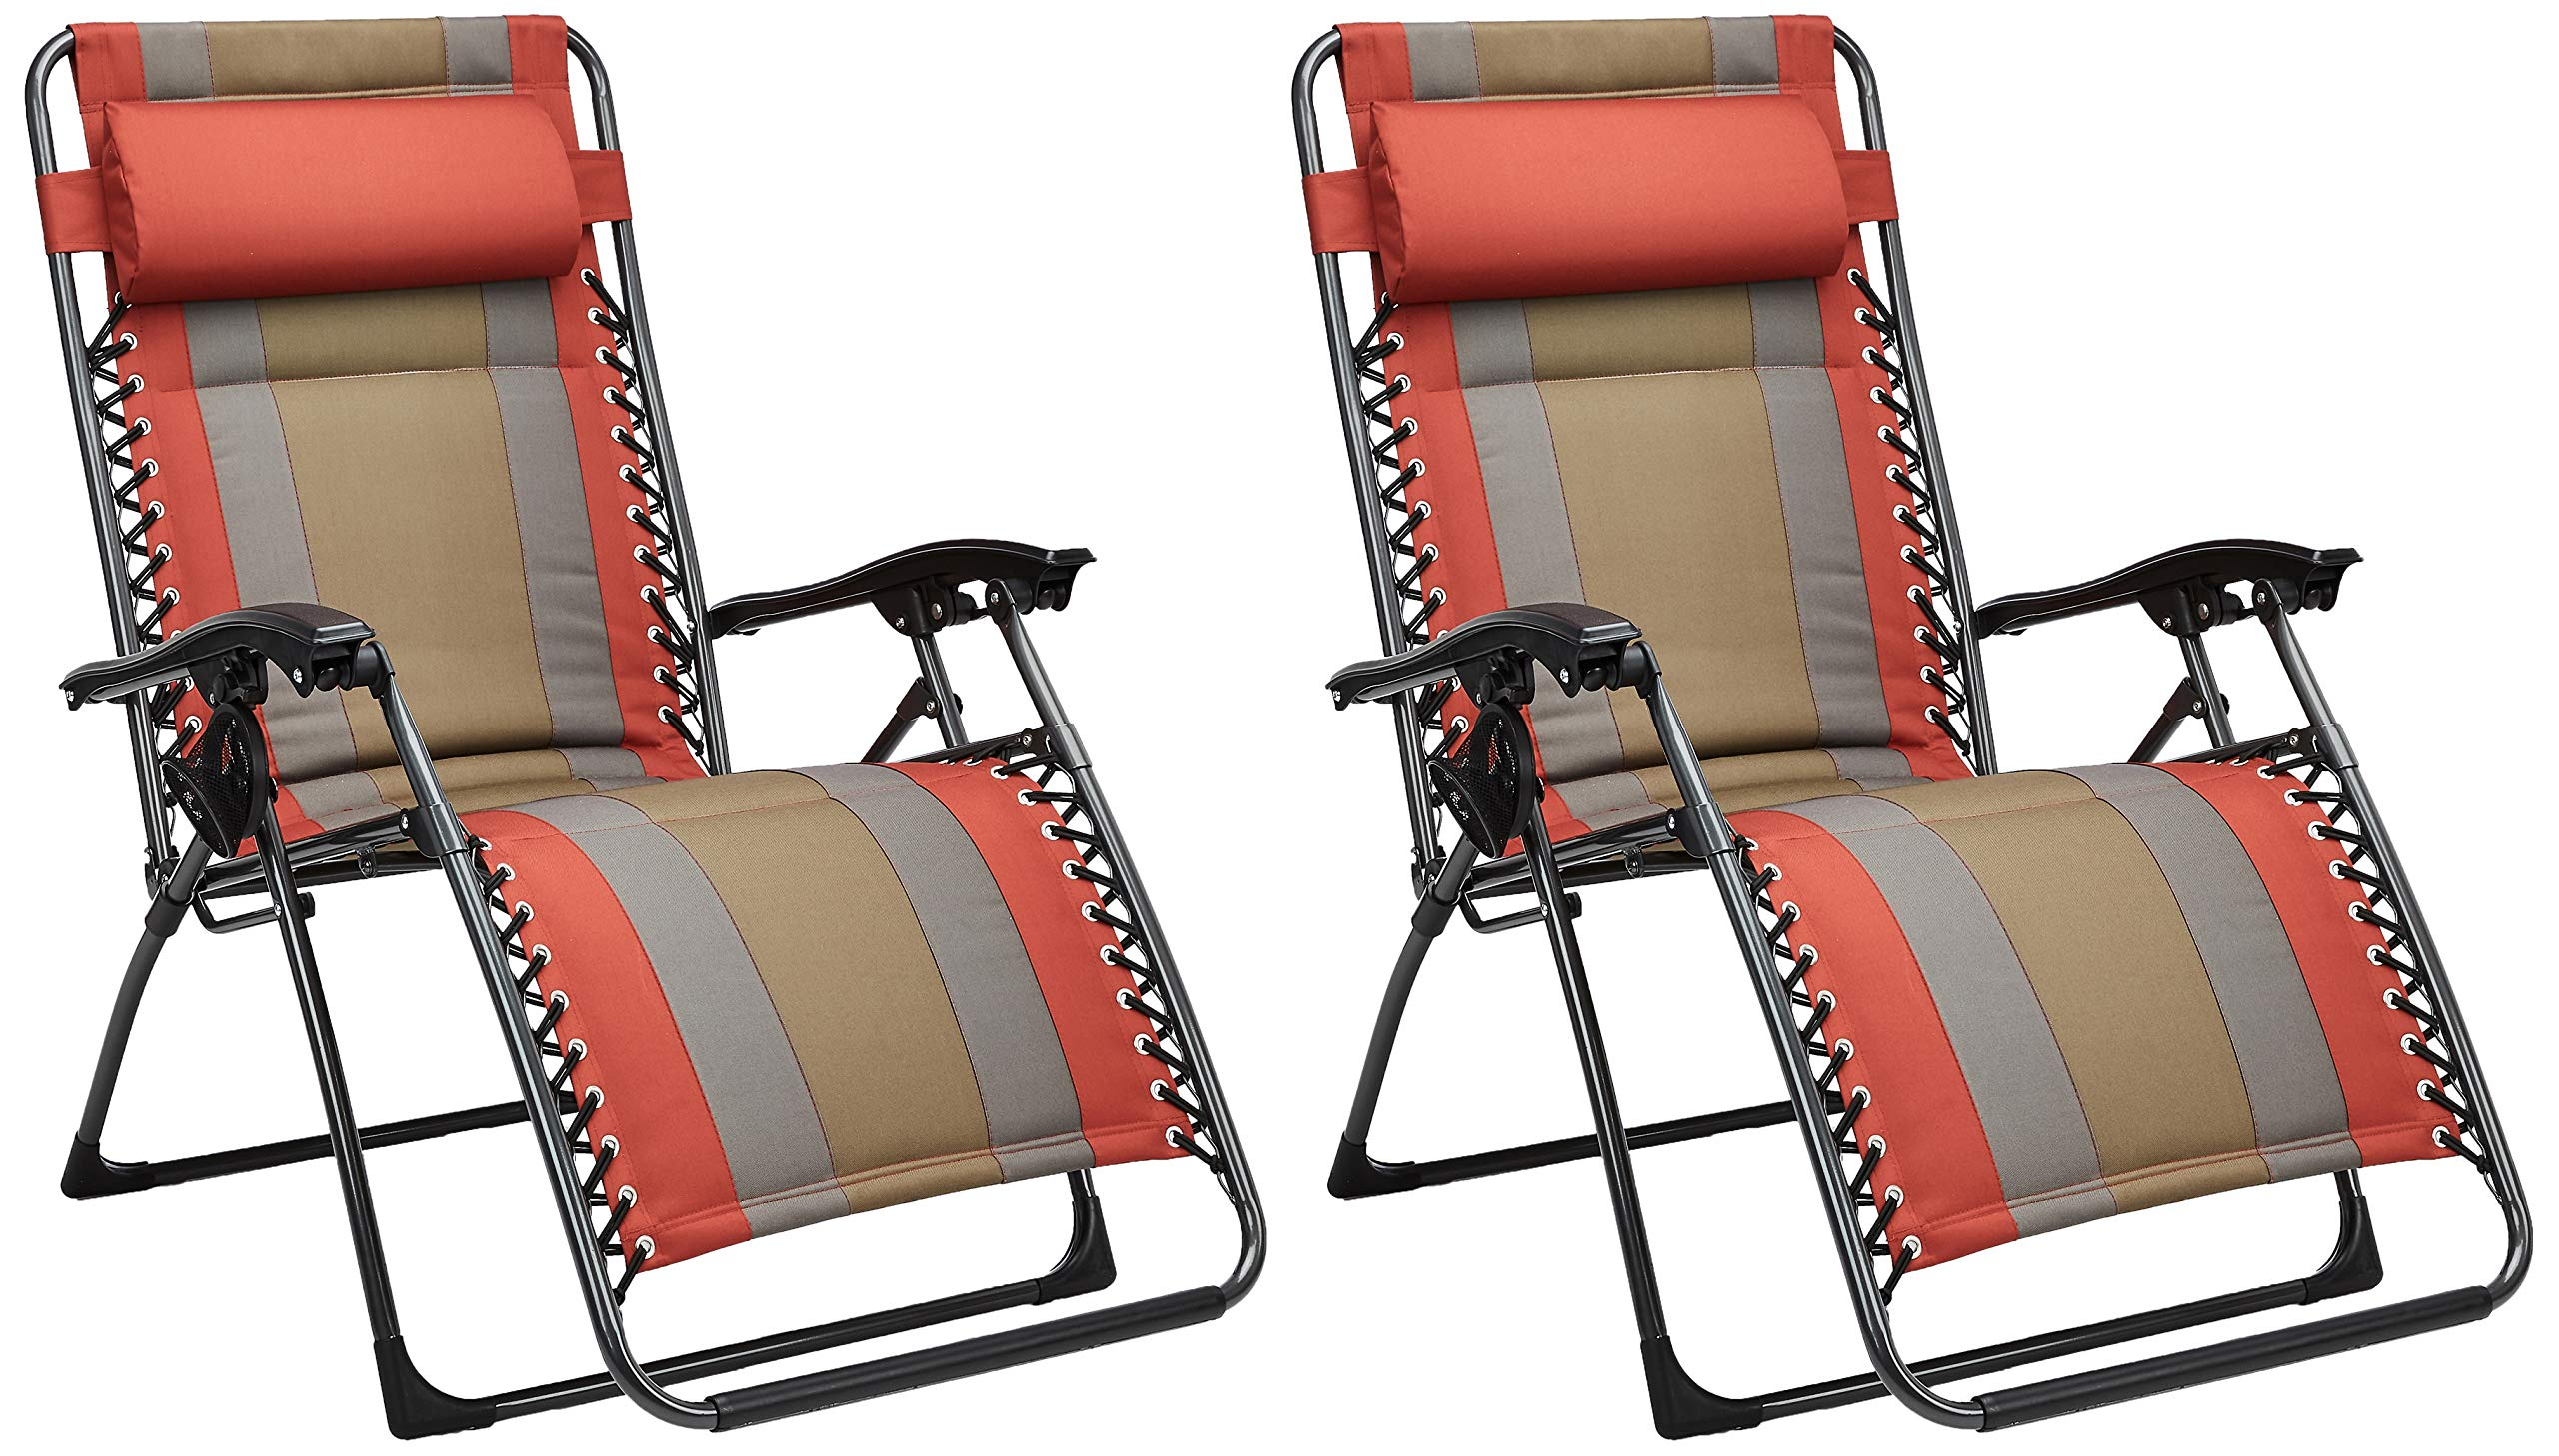 AmazonBasics Padded Zero Gravity Chair- Red, 2 Pack by AmazonBasics